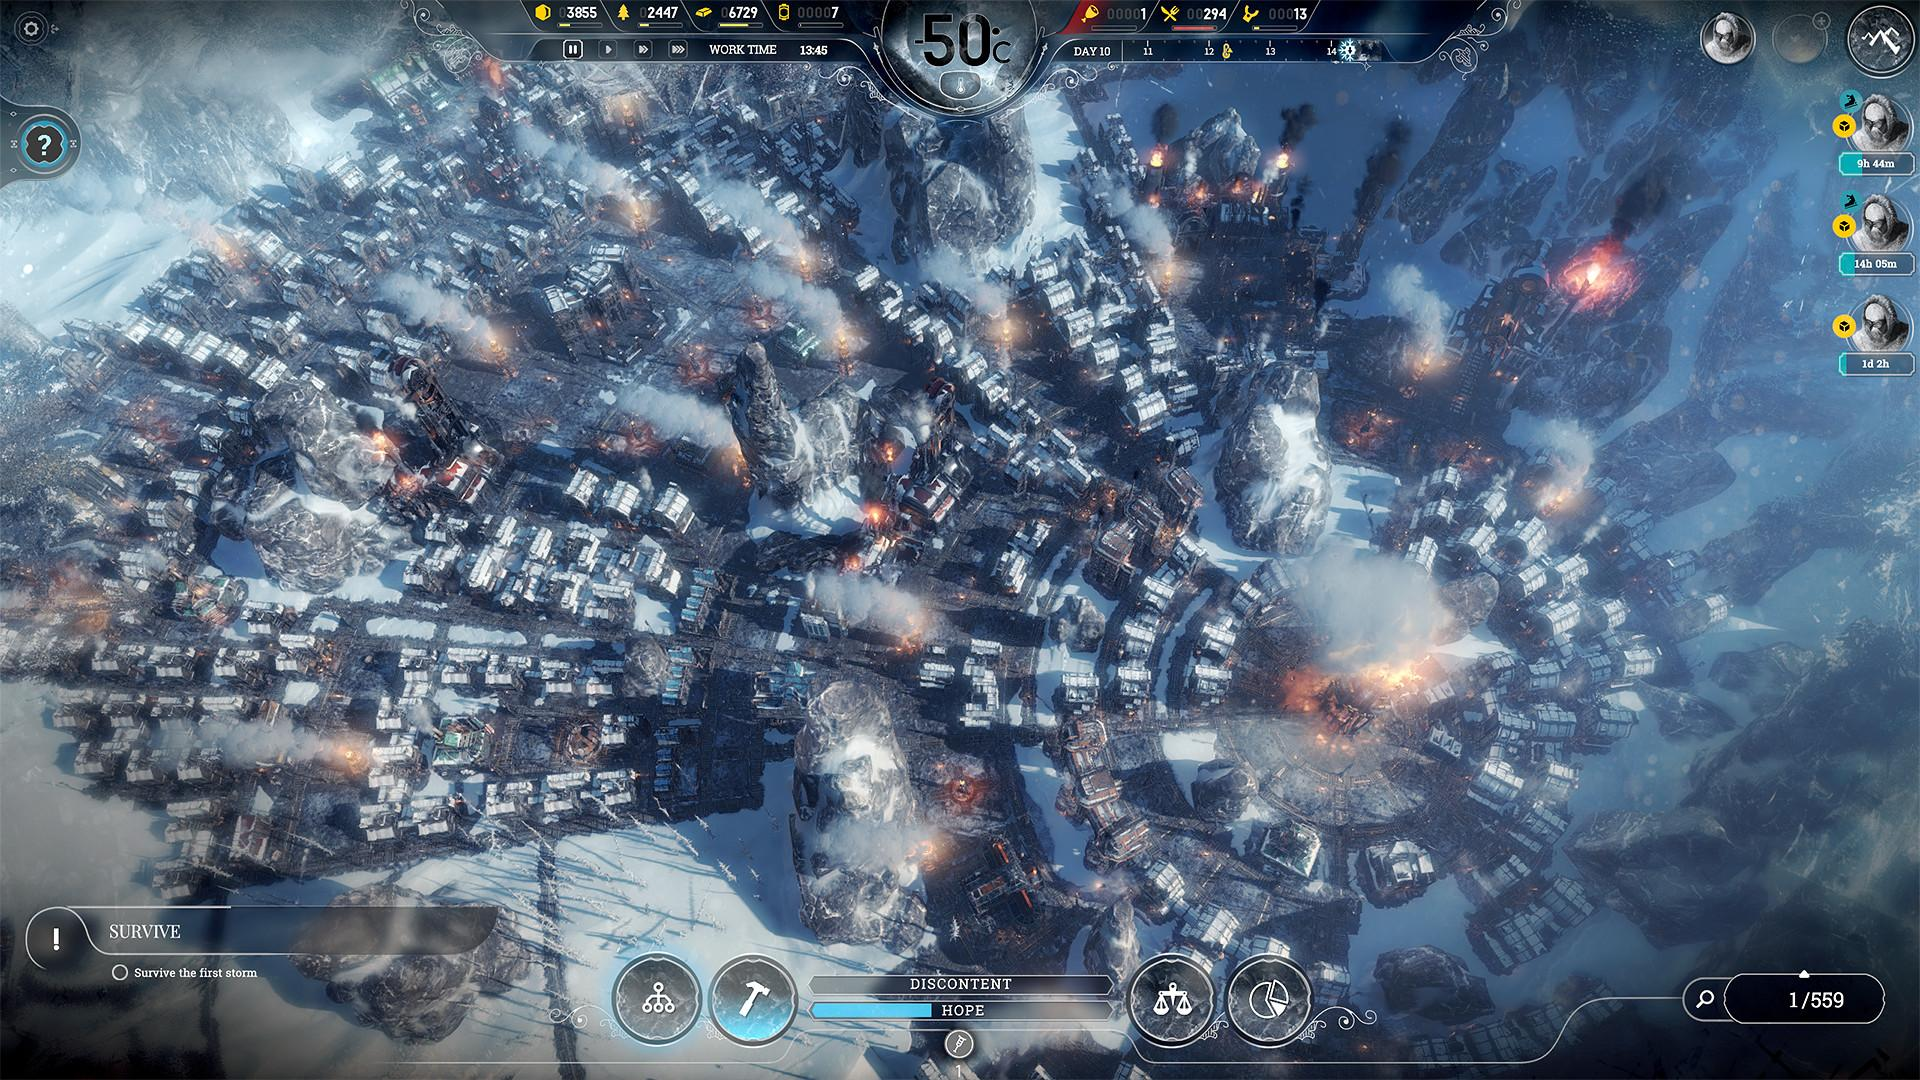 Frostpunk blends city building with survival mechanics and difficult decision making